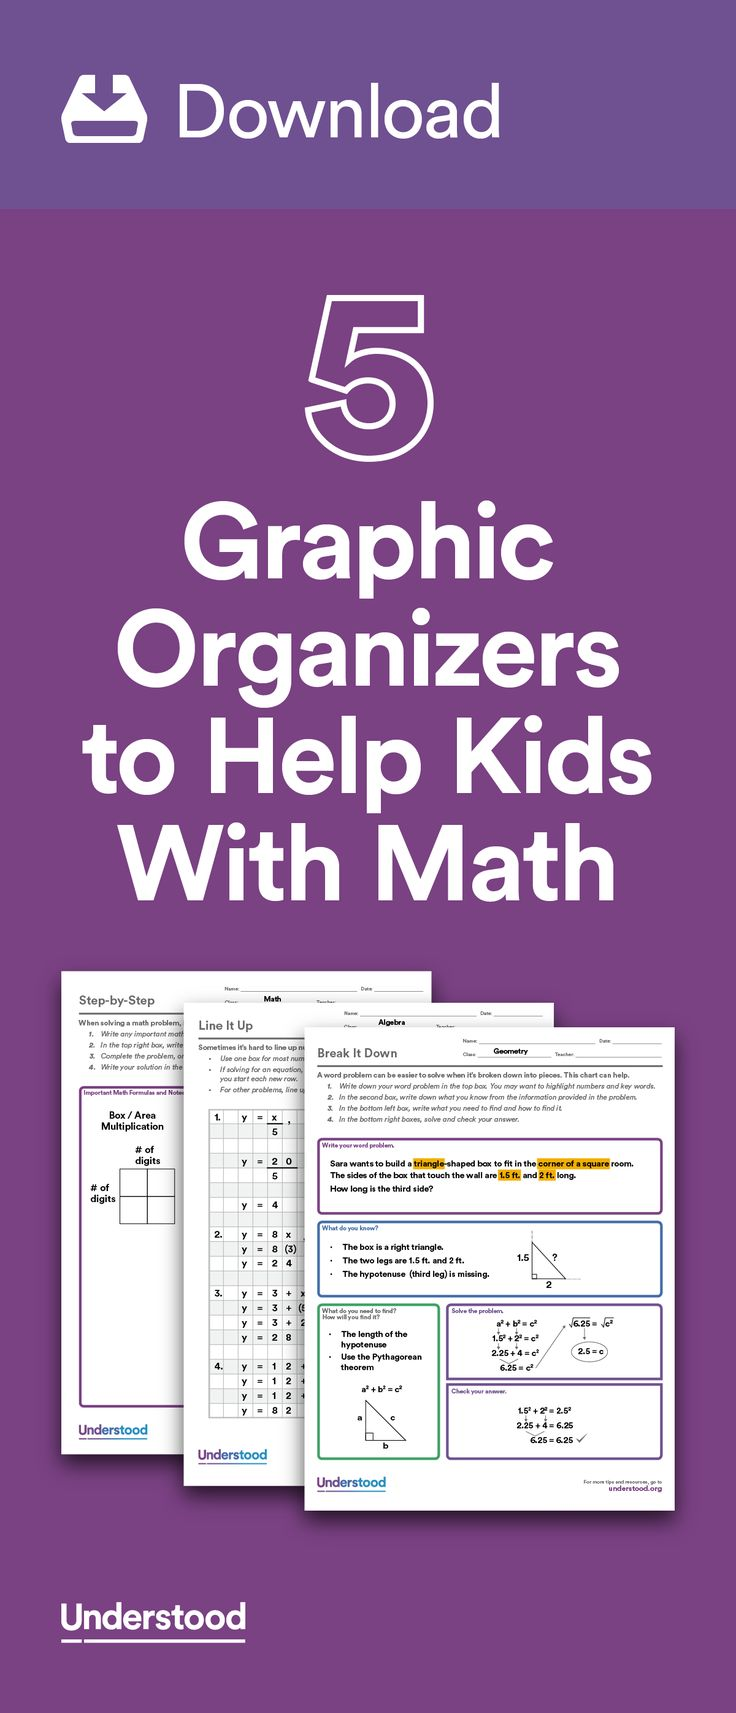 If your child has trouble with math because of dyscalculia or other learning and attention issues, graphic organizers can help. Graphic organizers allow kids to break down math problems into sequential steps. They're great tools for figuring out what's being asked in a word problem, which operation to use or how to organize answers.